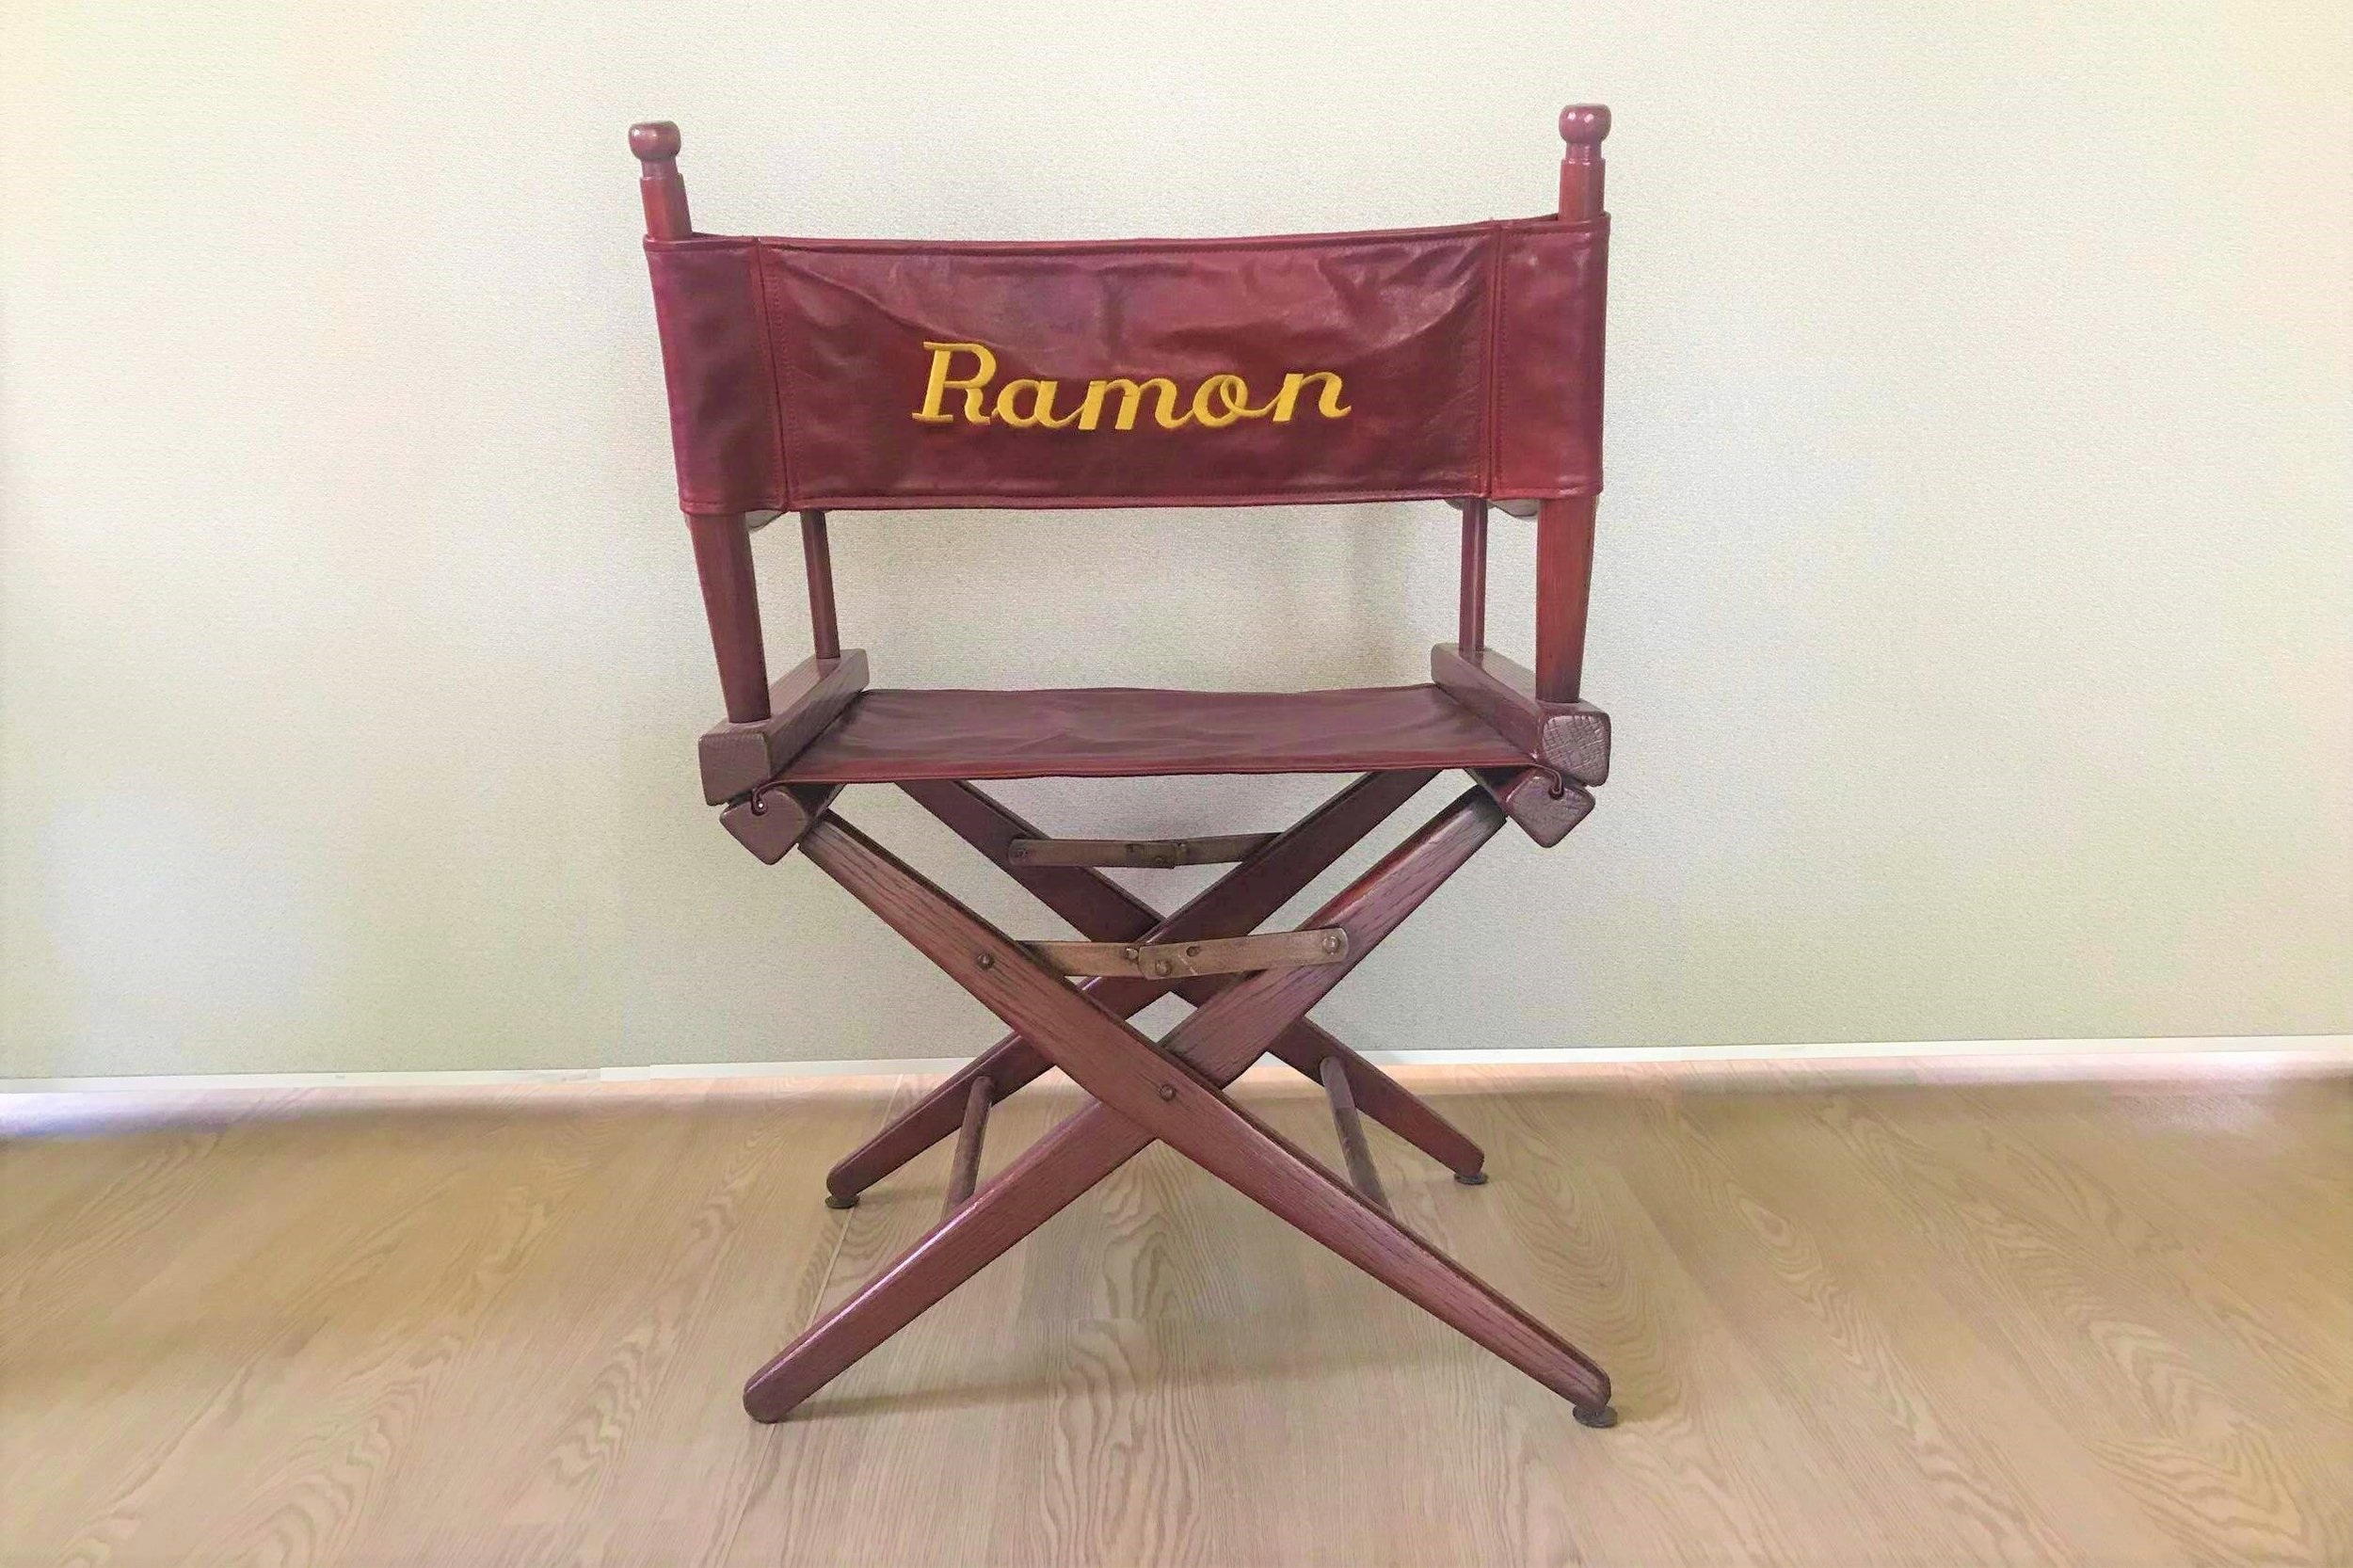 "Martin Sheen Studio Chair - Martin Sheen's studio chair donated by the Sheen Family, featuring the actor's real name: Ramon. 32"" tall.Valued as pricelessStarting bid $80"